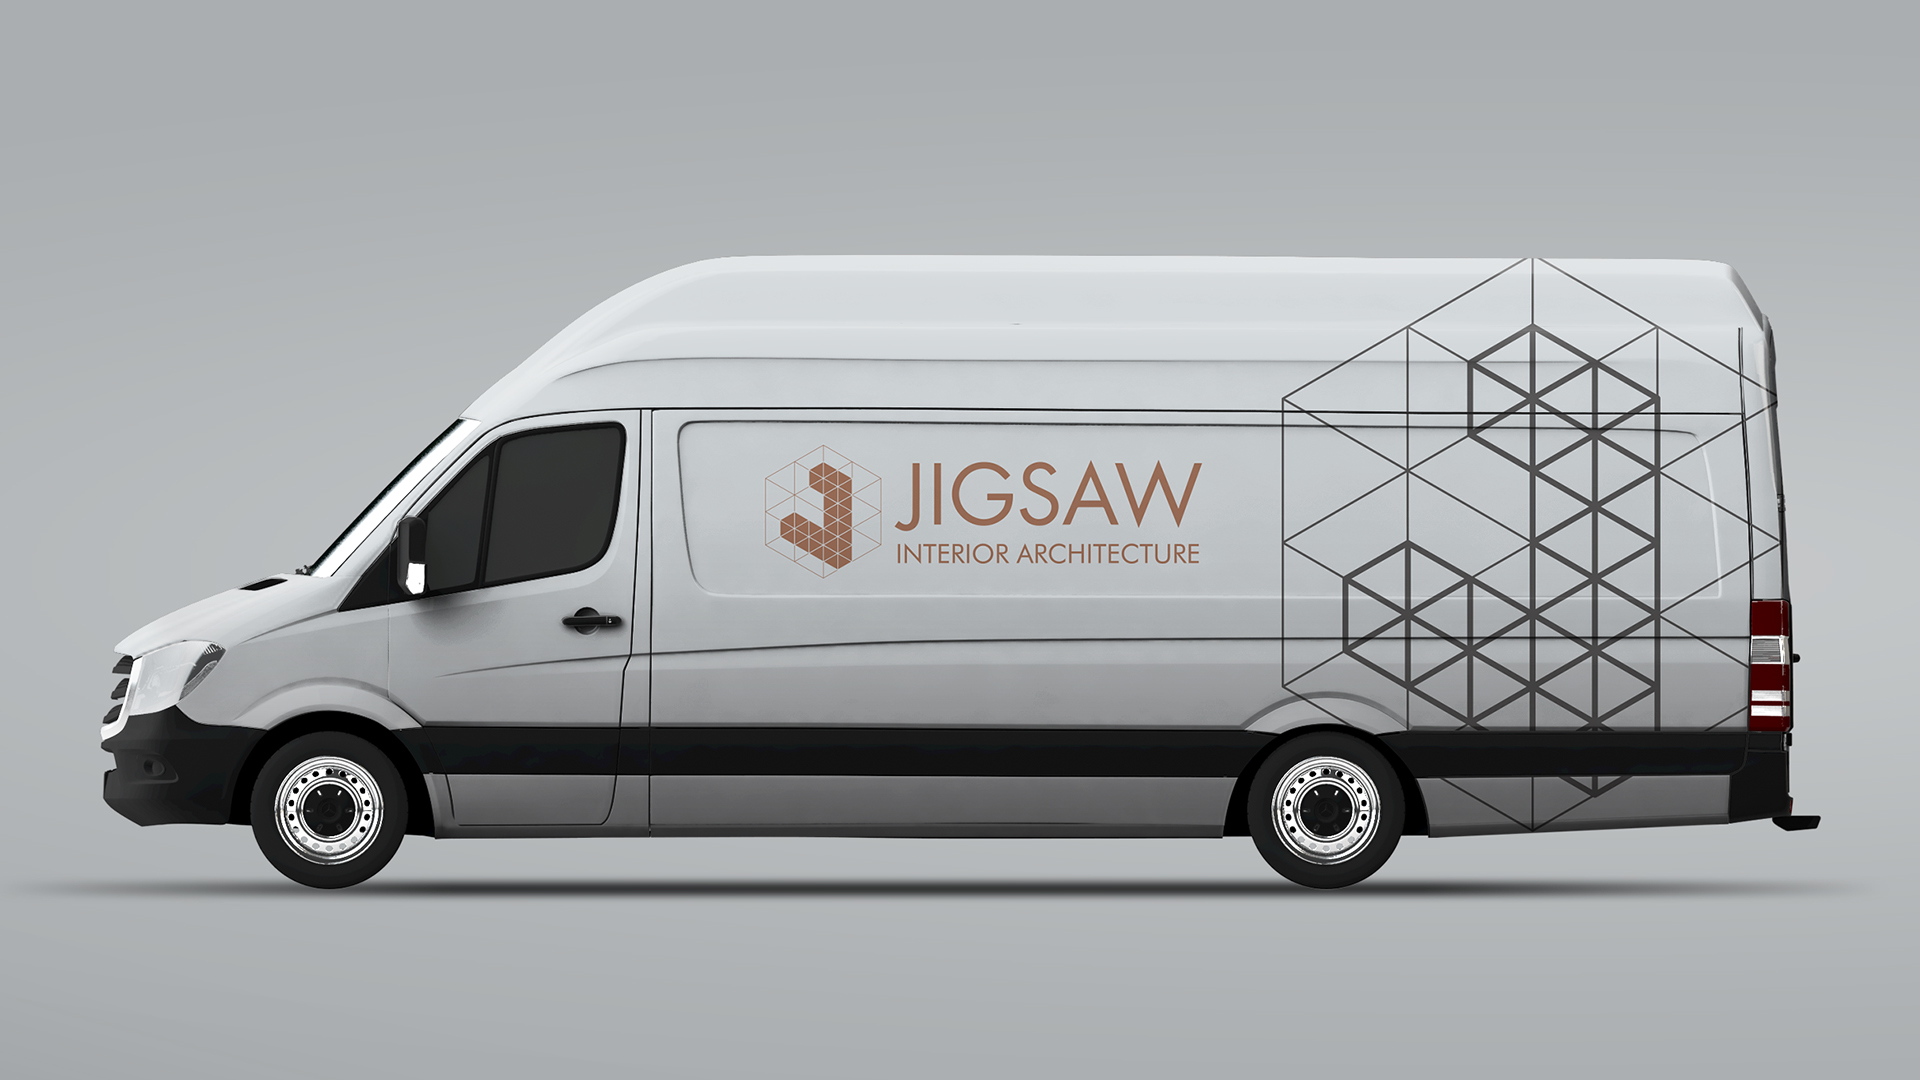 Jigsaw Interior Architecture Van Livery | We Are 778 Bournemouth Poole Branding Graphic Design Web Development Creative Agency